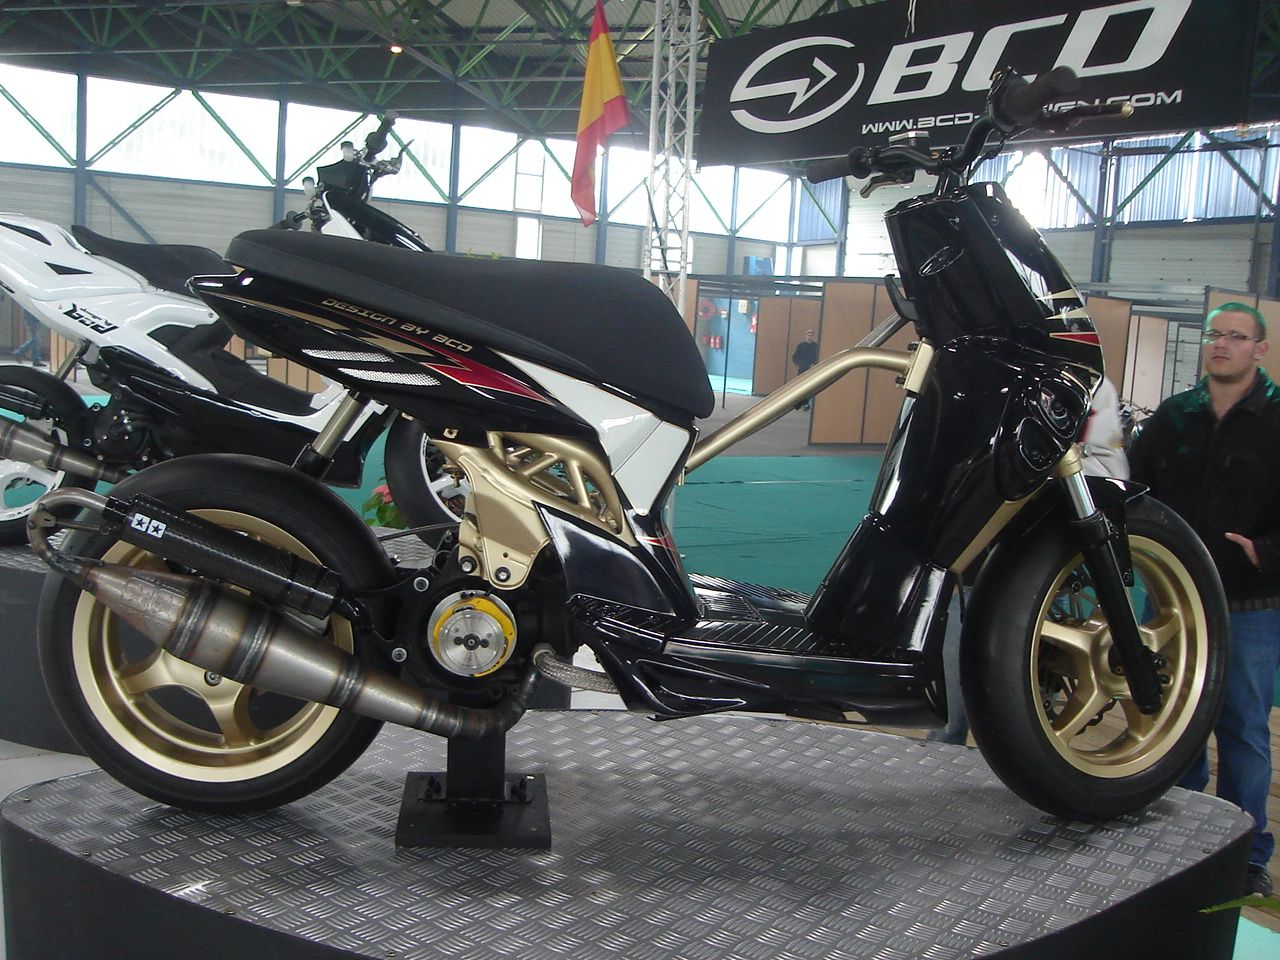 mbk stunt lc tuned by bcd 50cc scooters pinterest stunts scooters and scooter 50cc. Black Bedroom Furniture Sets. Home Design Ideas